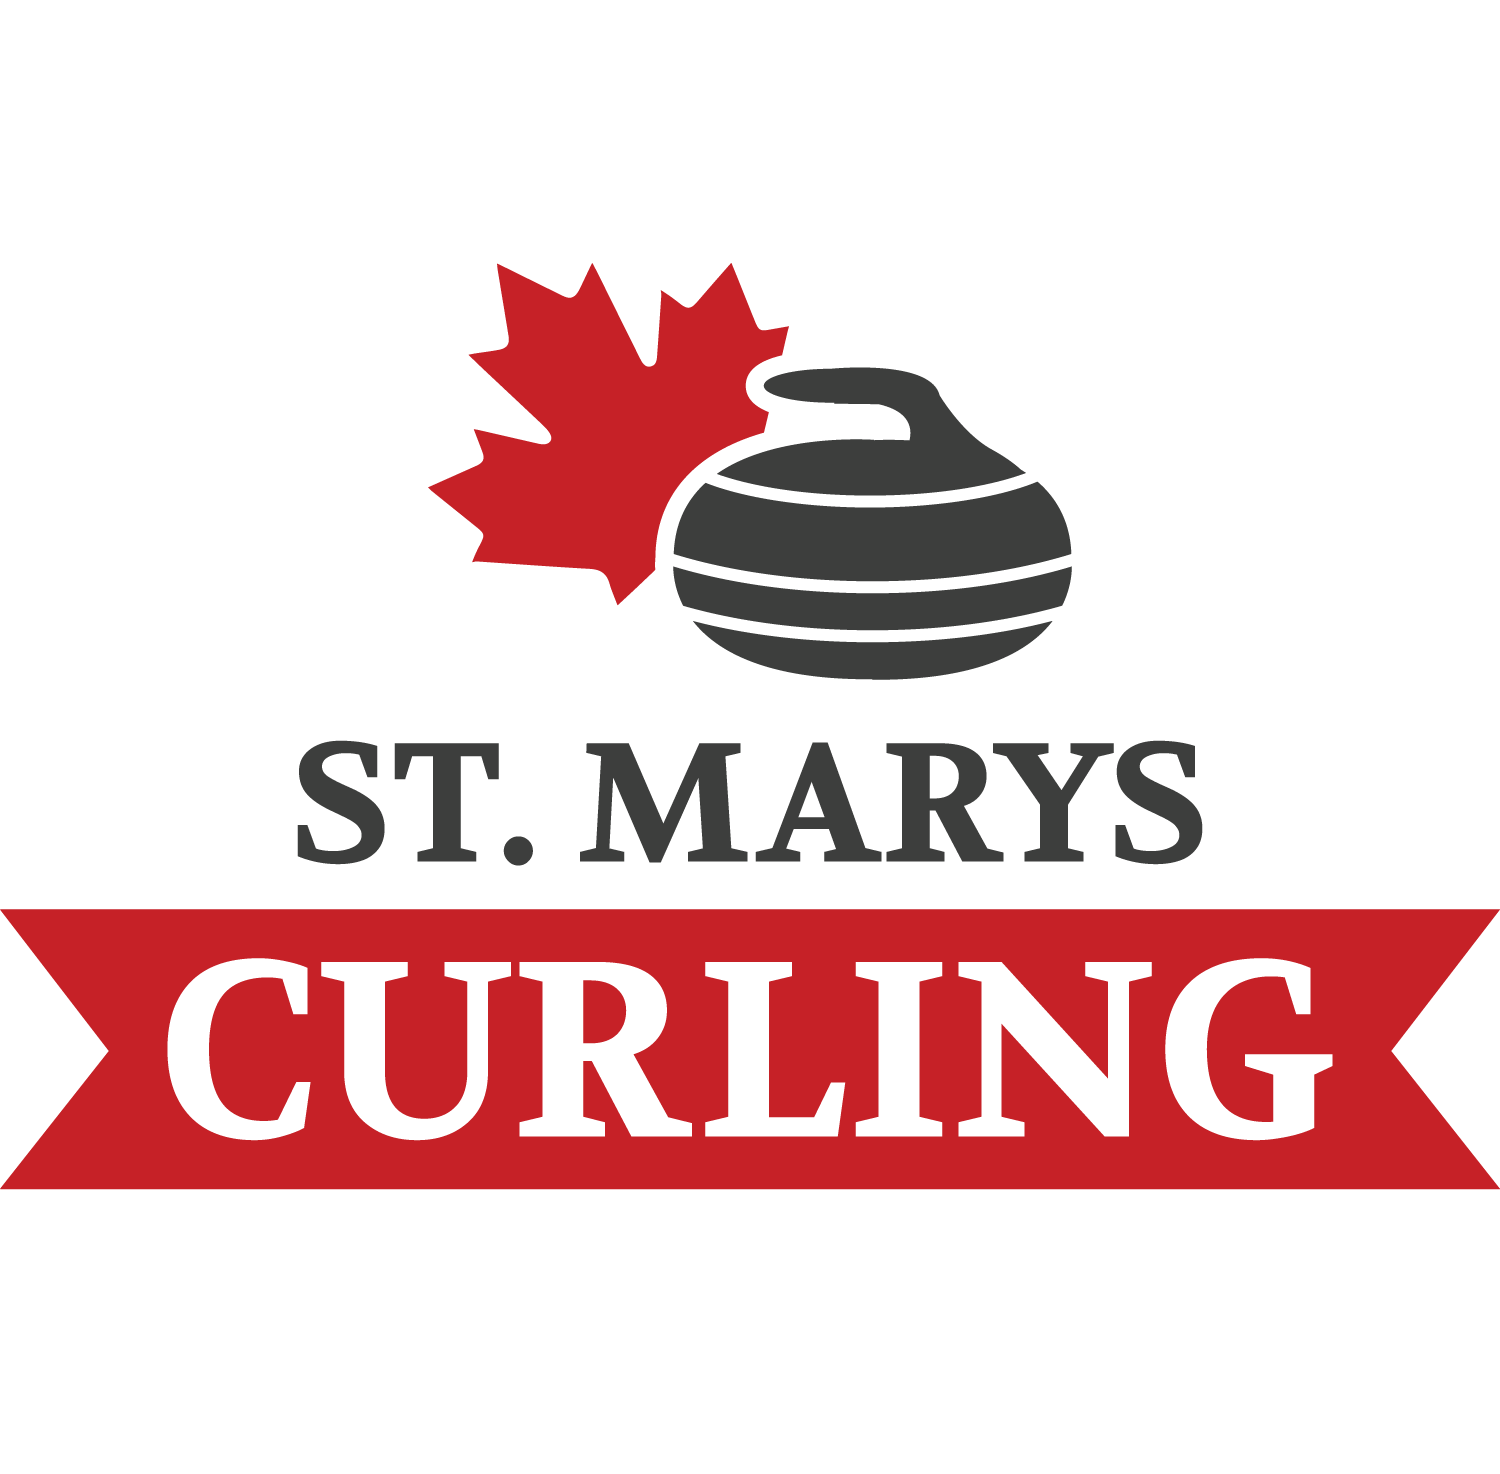 St. Marys Curling